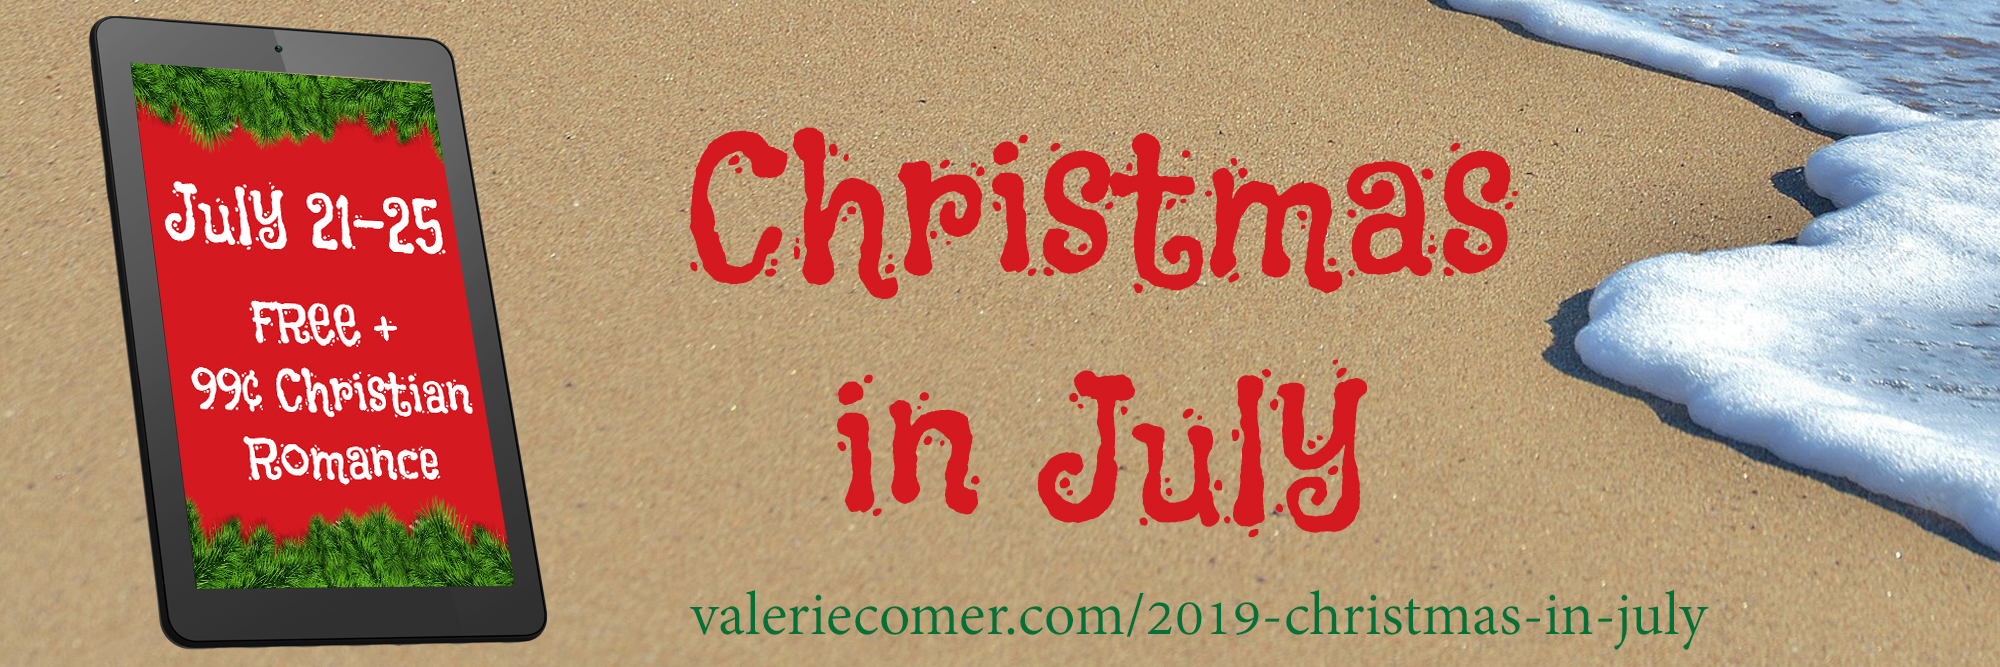 Christmas In July Free Graphics.2019 Christmas In July